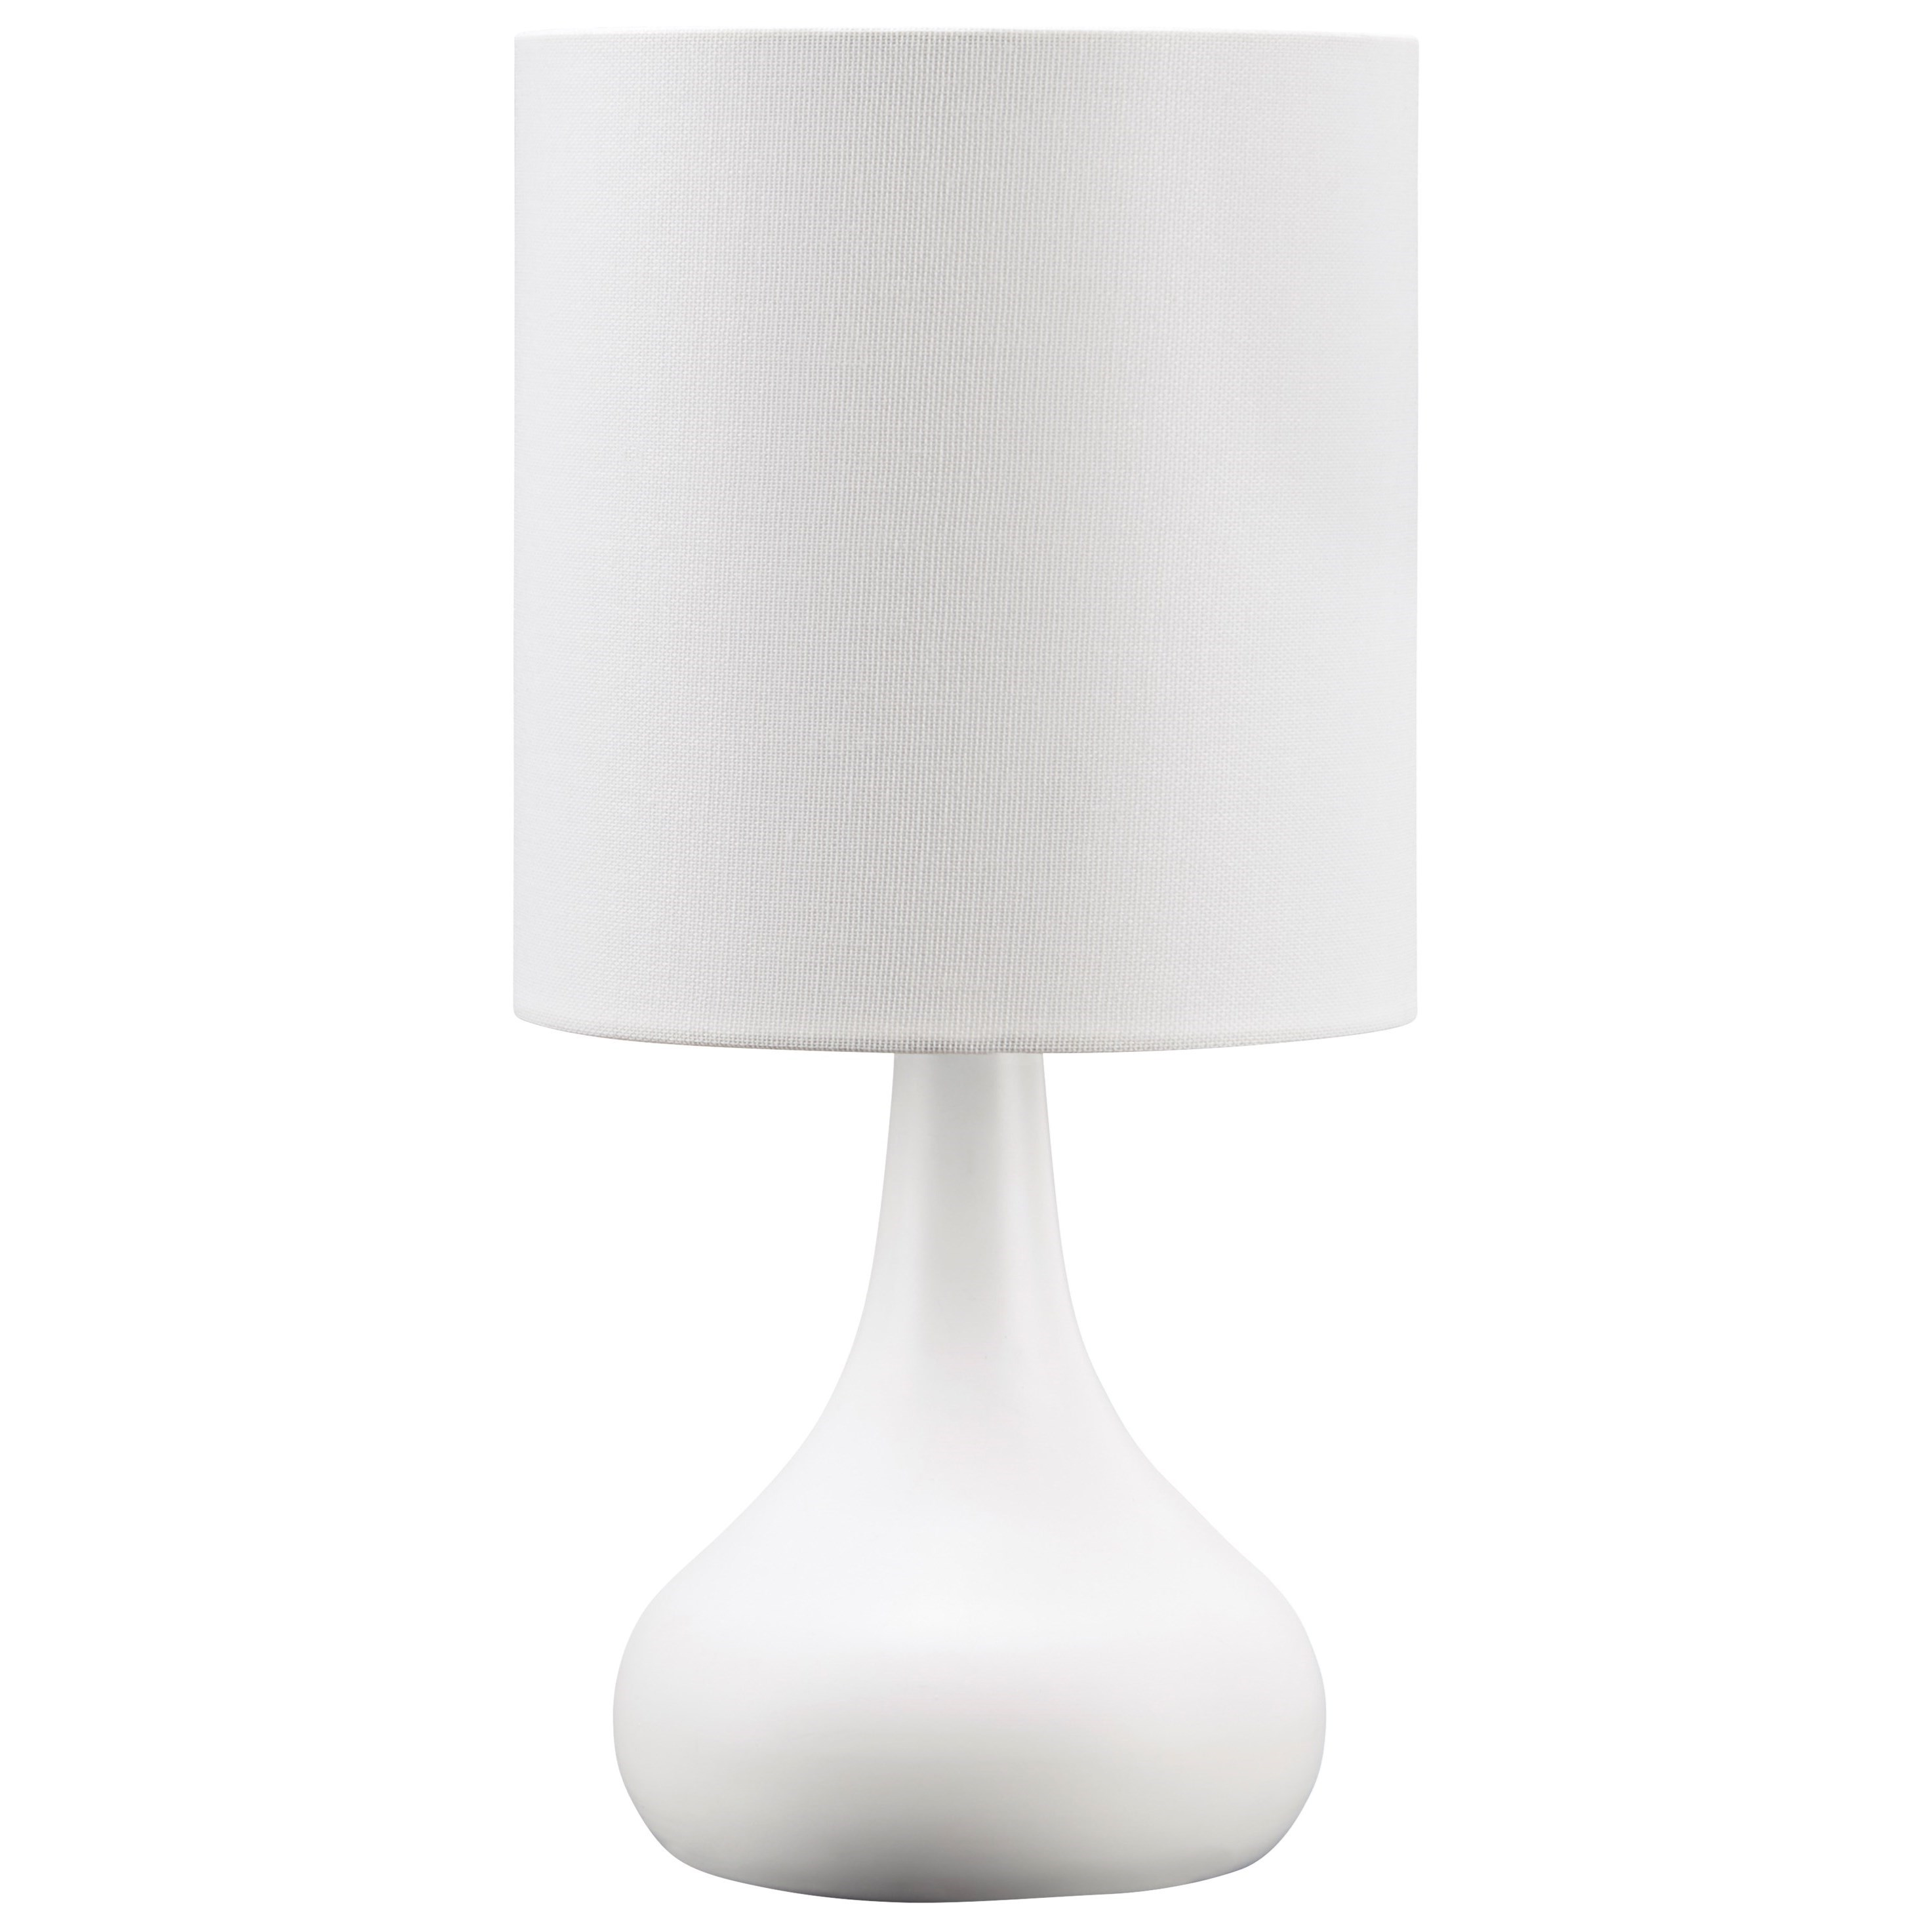 Lamps - Contemporary Lanry White Metal Table Lamp by Ashley (Signature Design) at Johnny Janosik